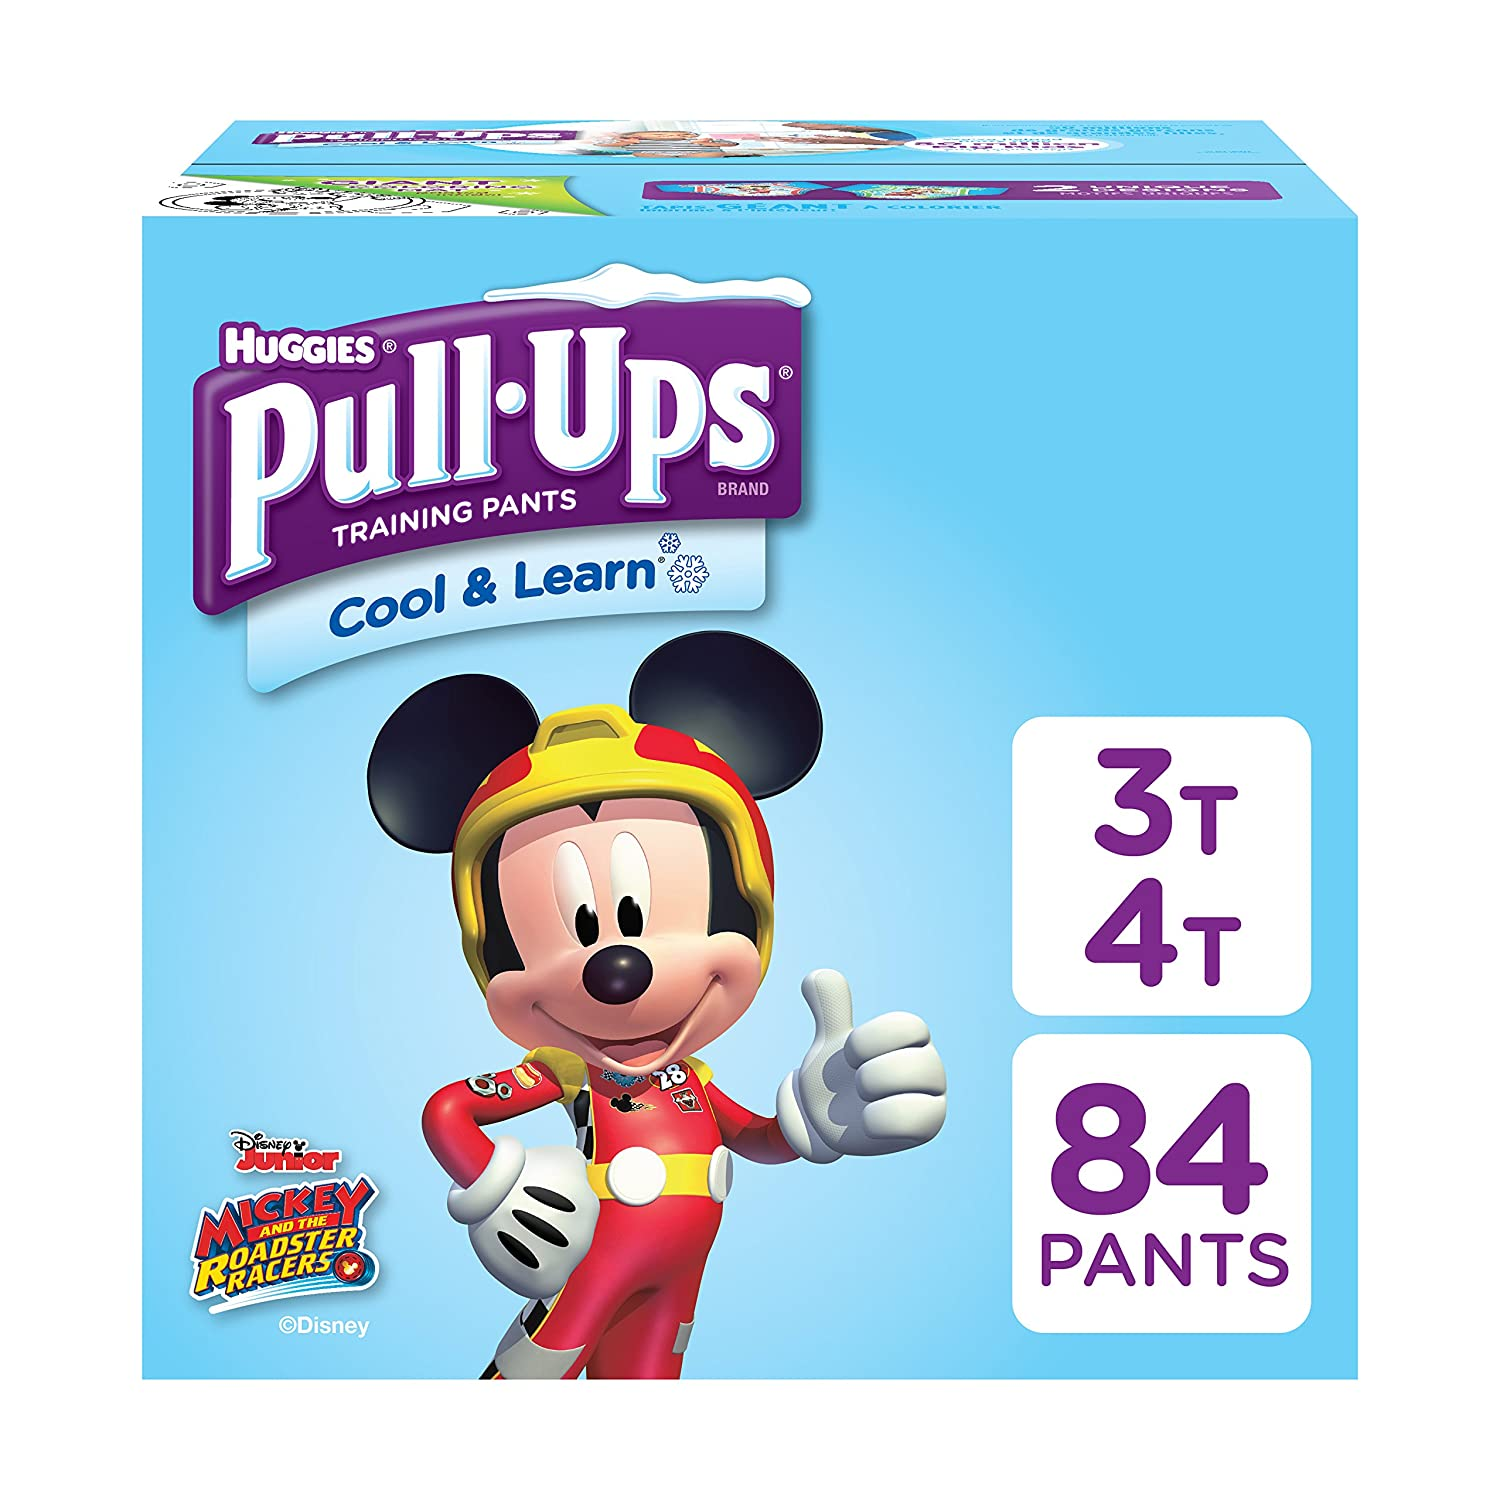 Pull-Ups Cool & Learn Potty Training Pants for Boys, 4T-5T (38-50 lb.), 74 Ct. (Packaging May Vary) 10036000464082